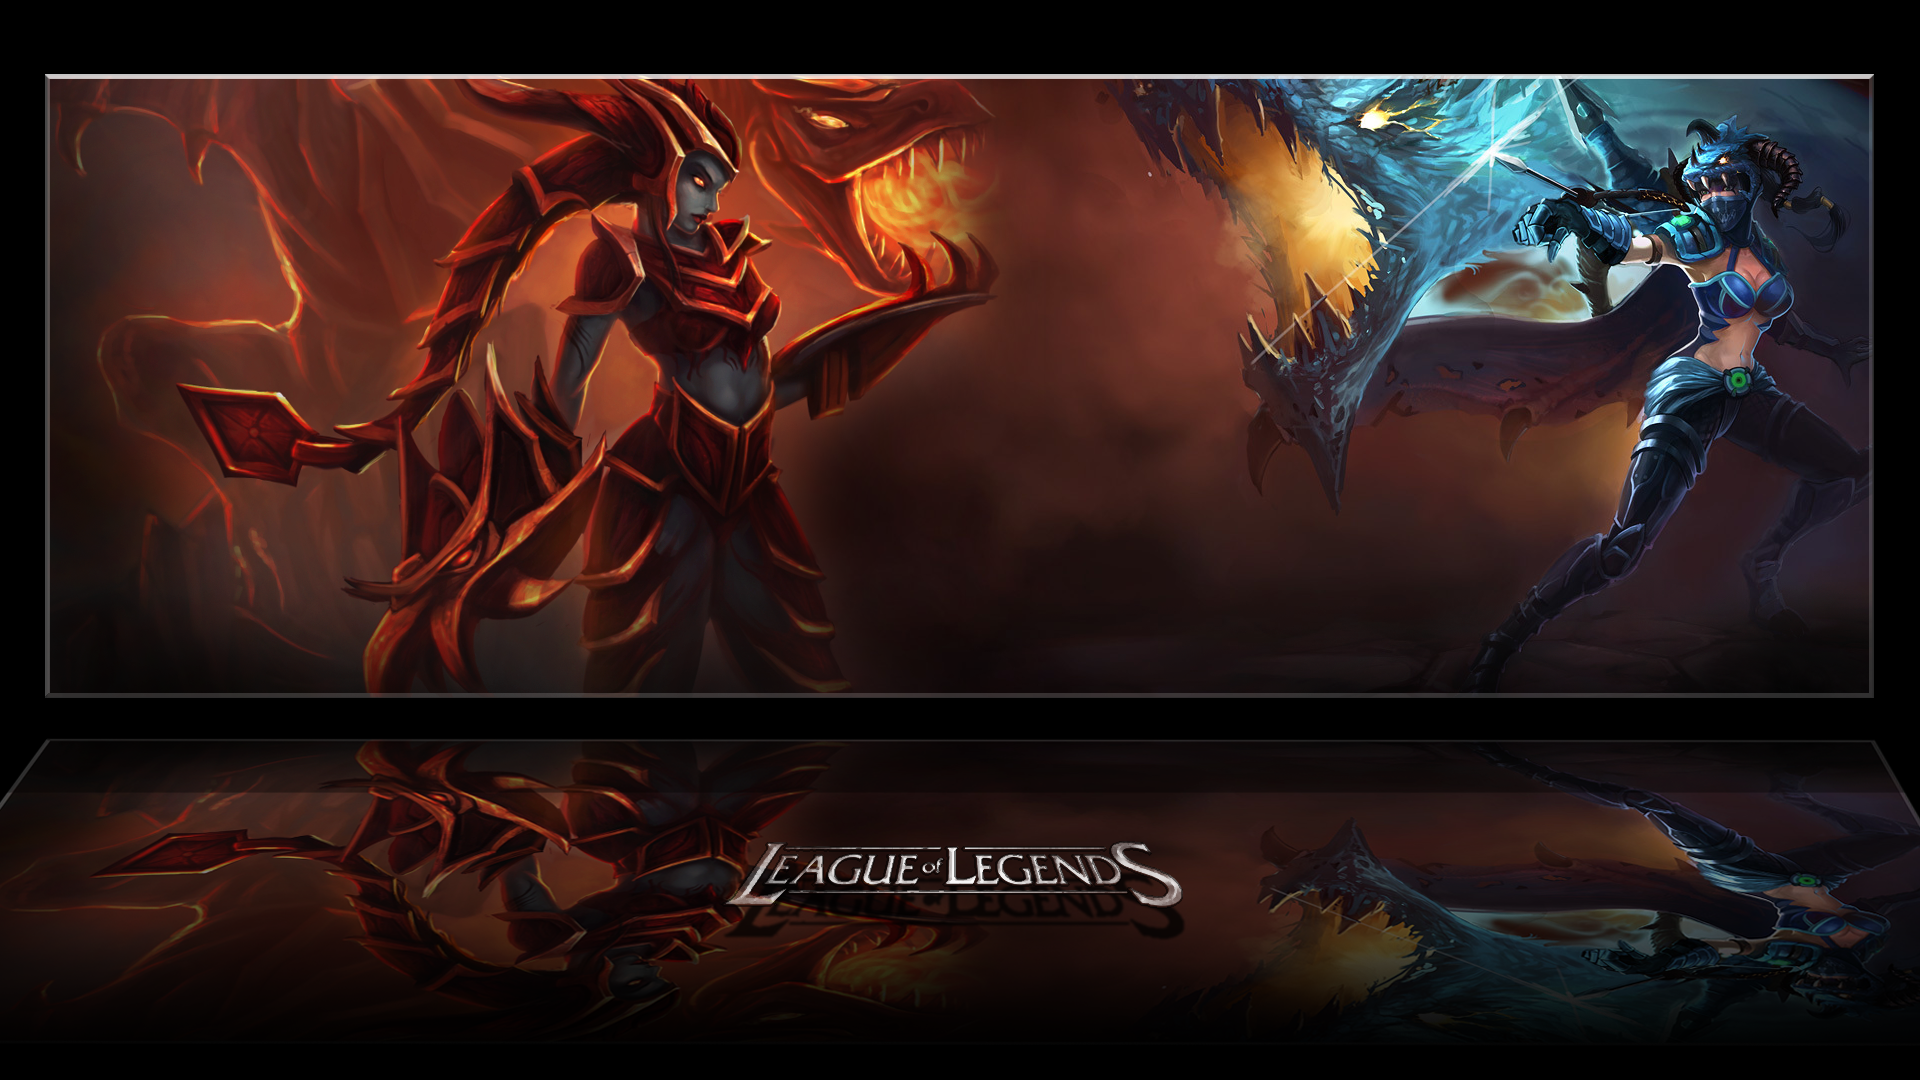 Shyvana vs Vayne wallpaper